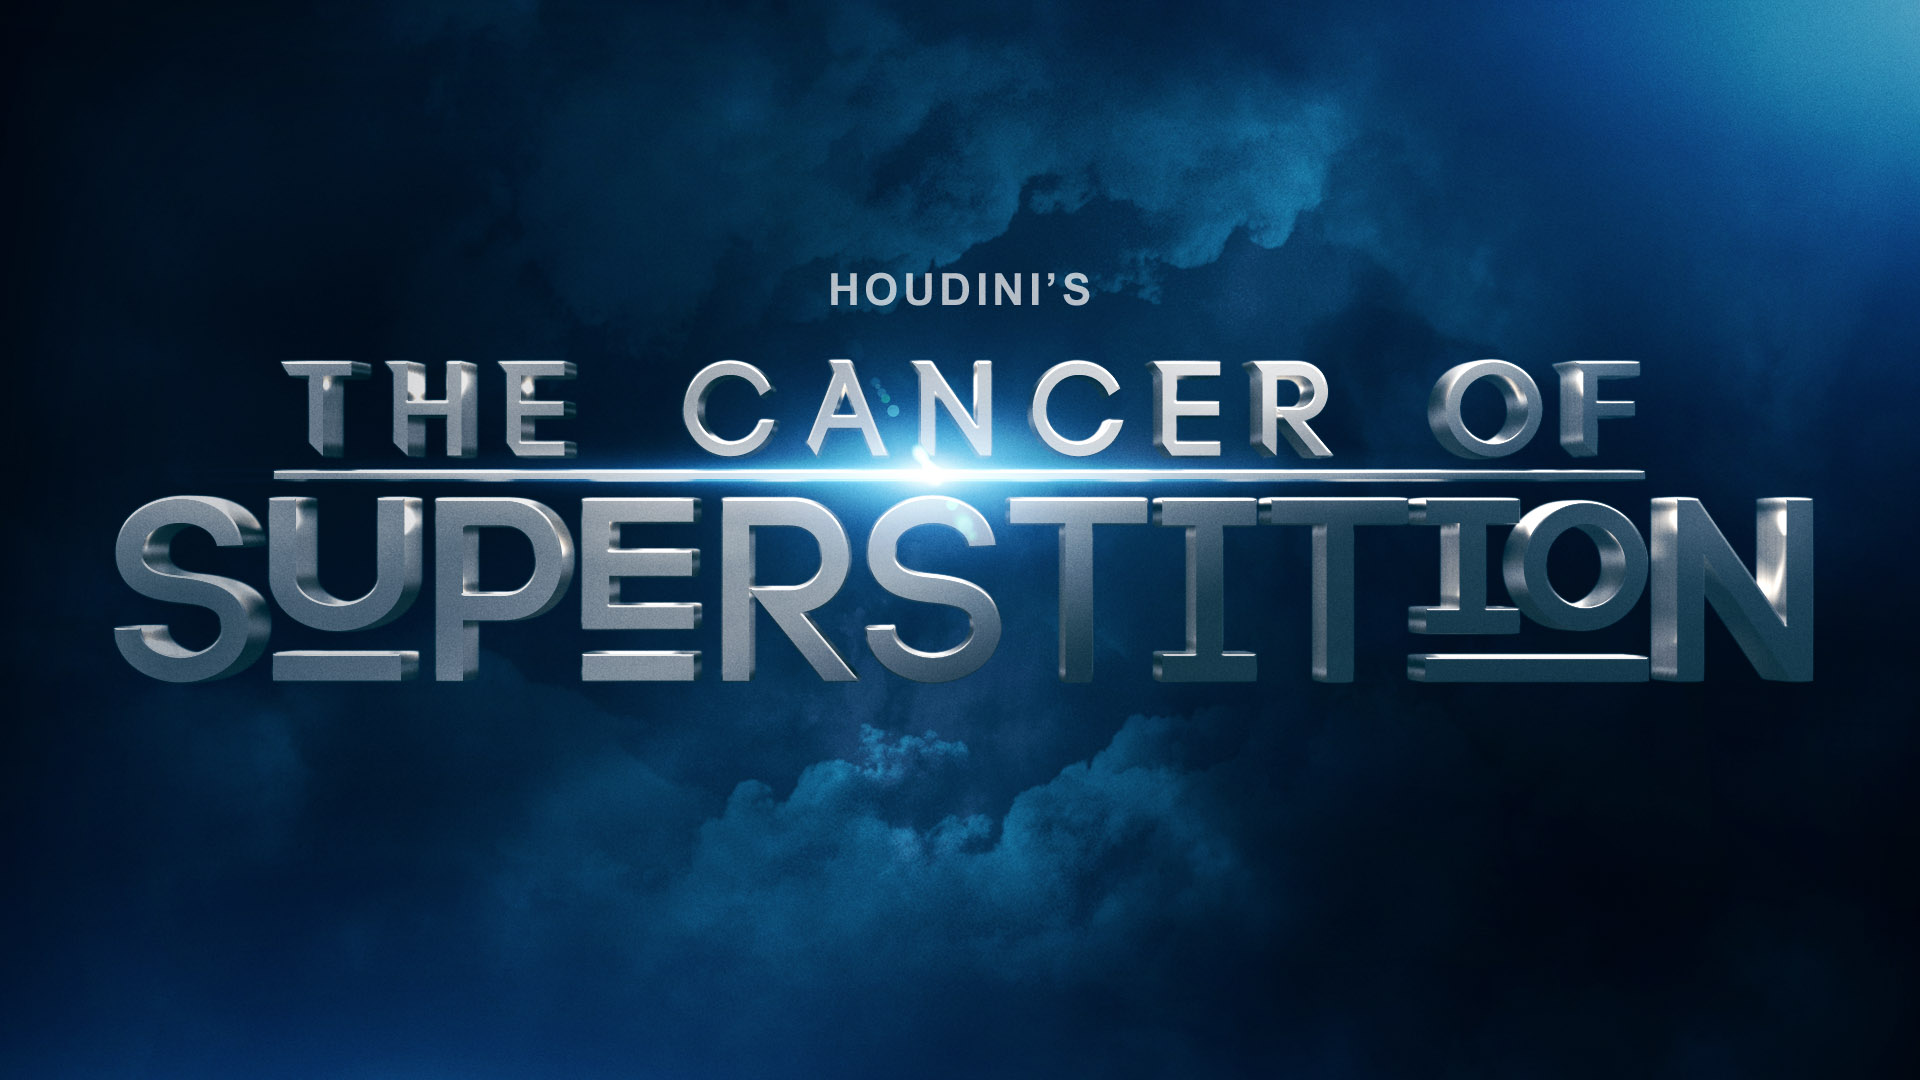 Harry Houdini's The Cancer Of Superstition